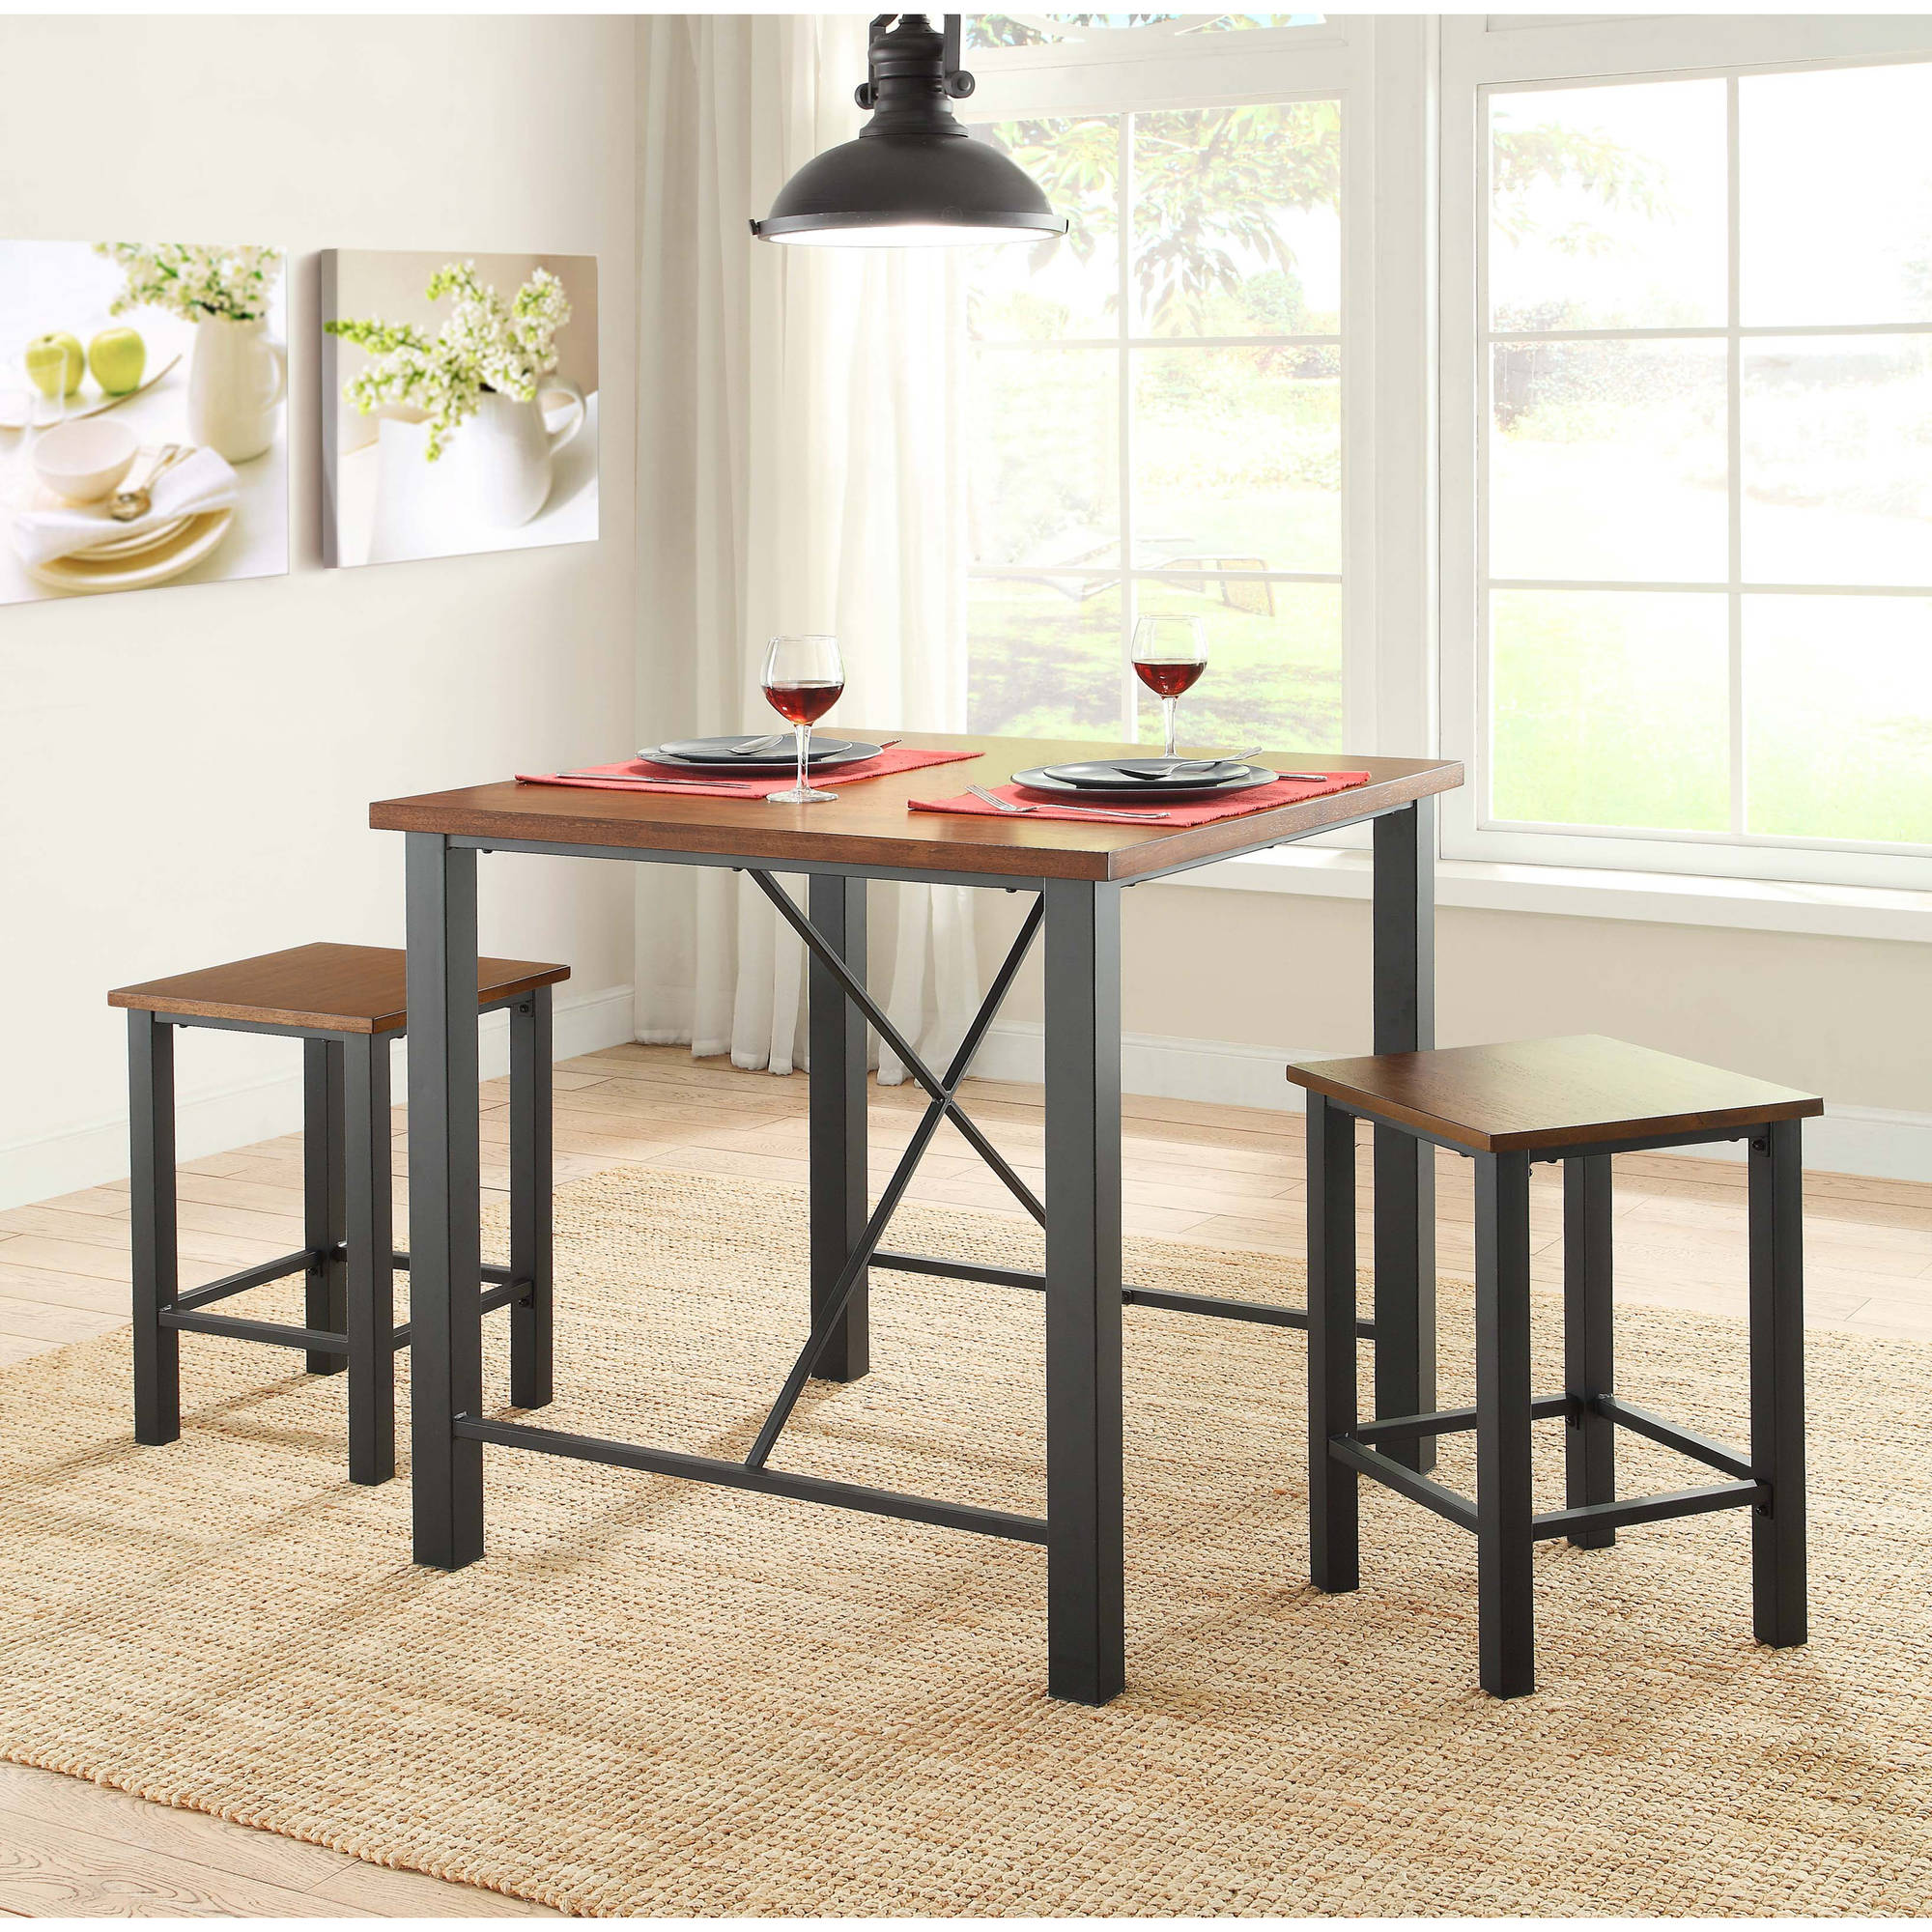 Costway 3 PCS Counter Height Dining Set Faux Marble Table 2 Chairs Kitchen  Bar Furniture   Walmart.com